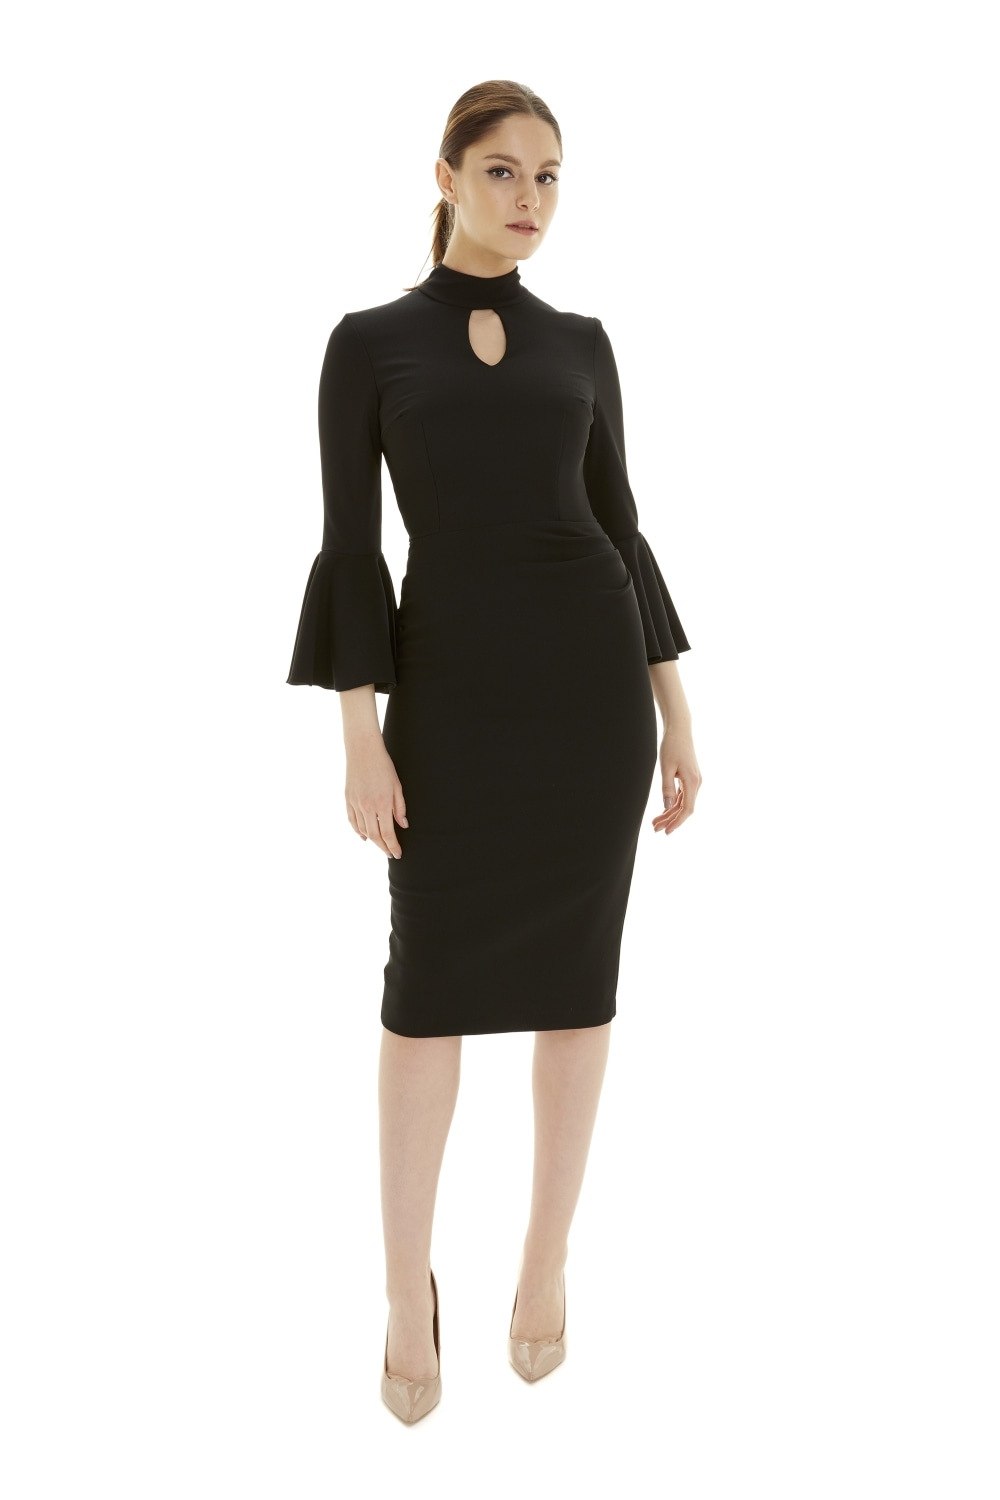 8afcf3027faa3 The Pretty Dress Company Lais Pencil Dress - SALE from The Pretty ...